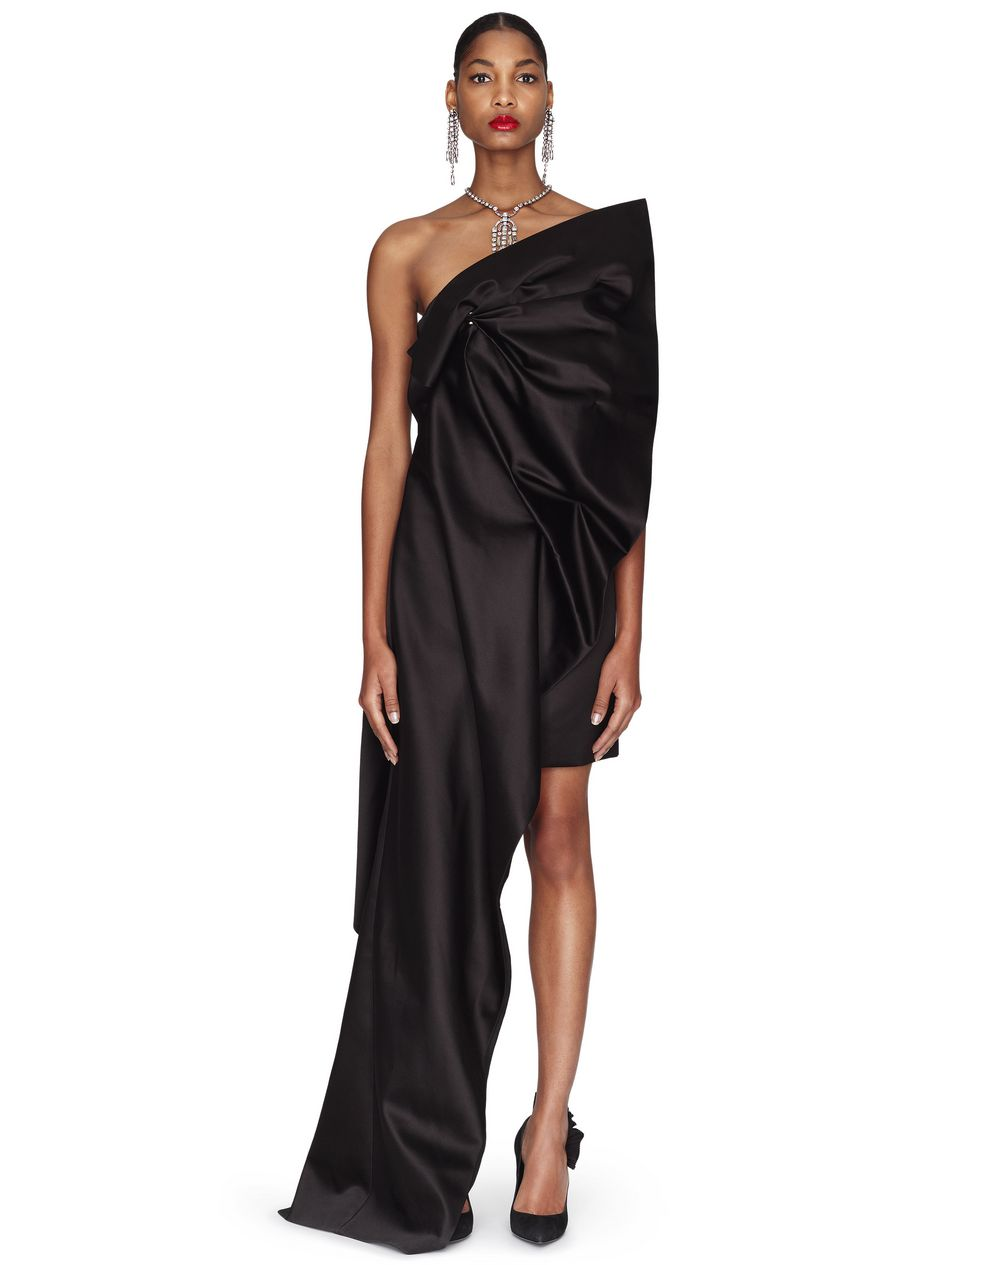 LONG SATIN DUCHESS DRESS - Lanvin